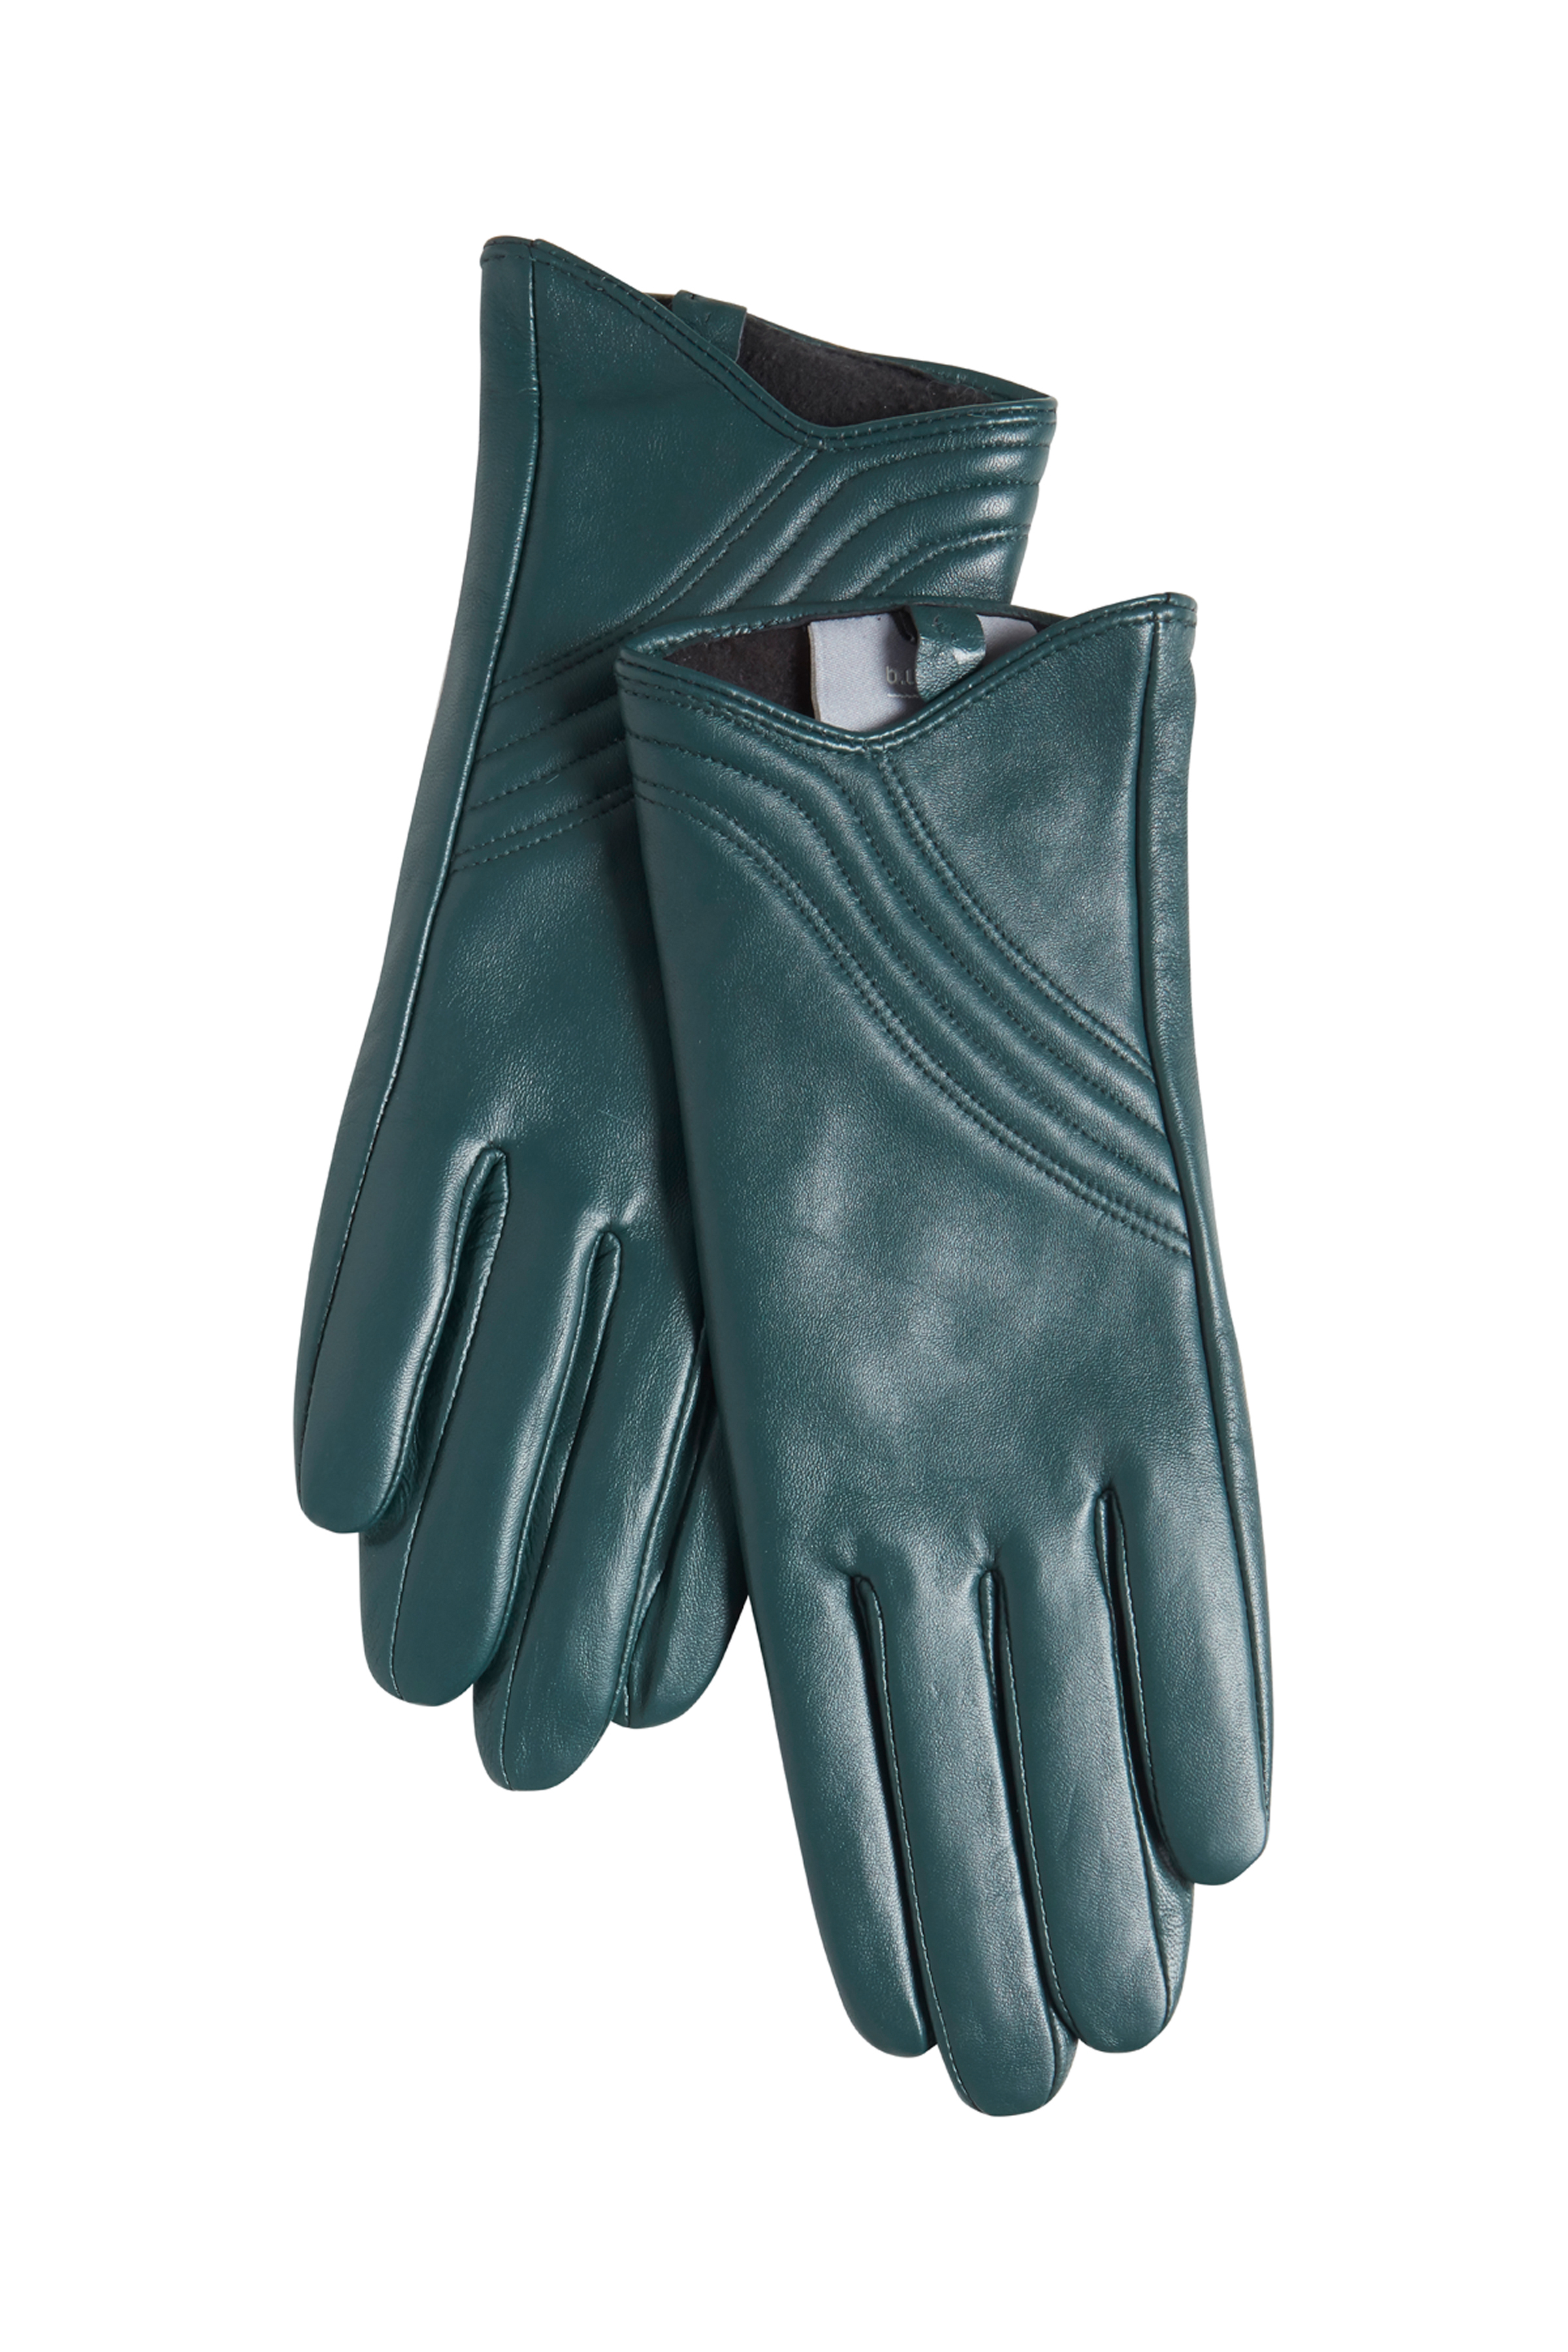 Majestic Green Leather gloves from b.young – Buy Majestic Green Leather gloves from size S/M-L/XL here